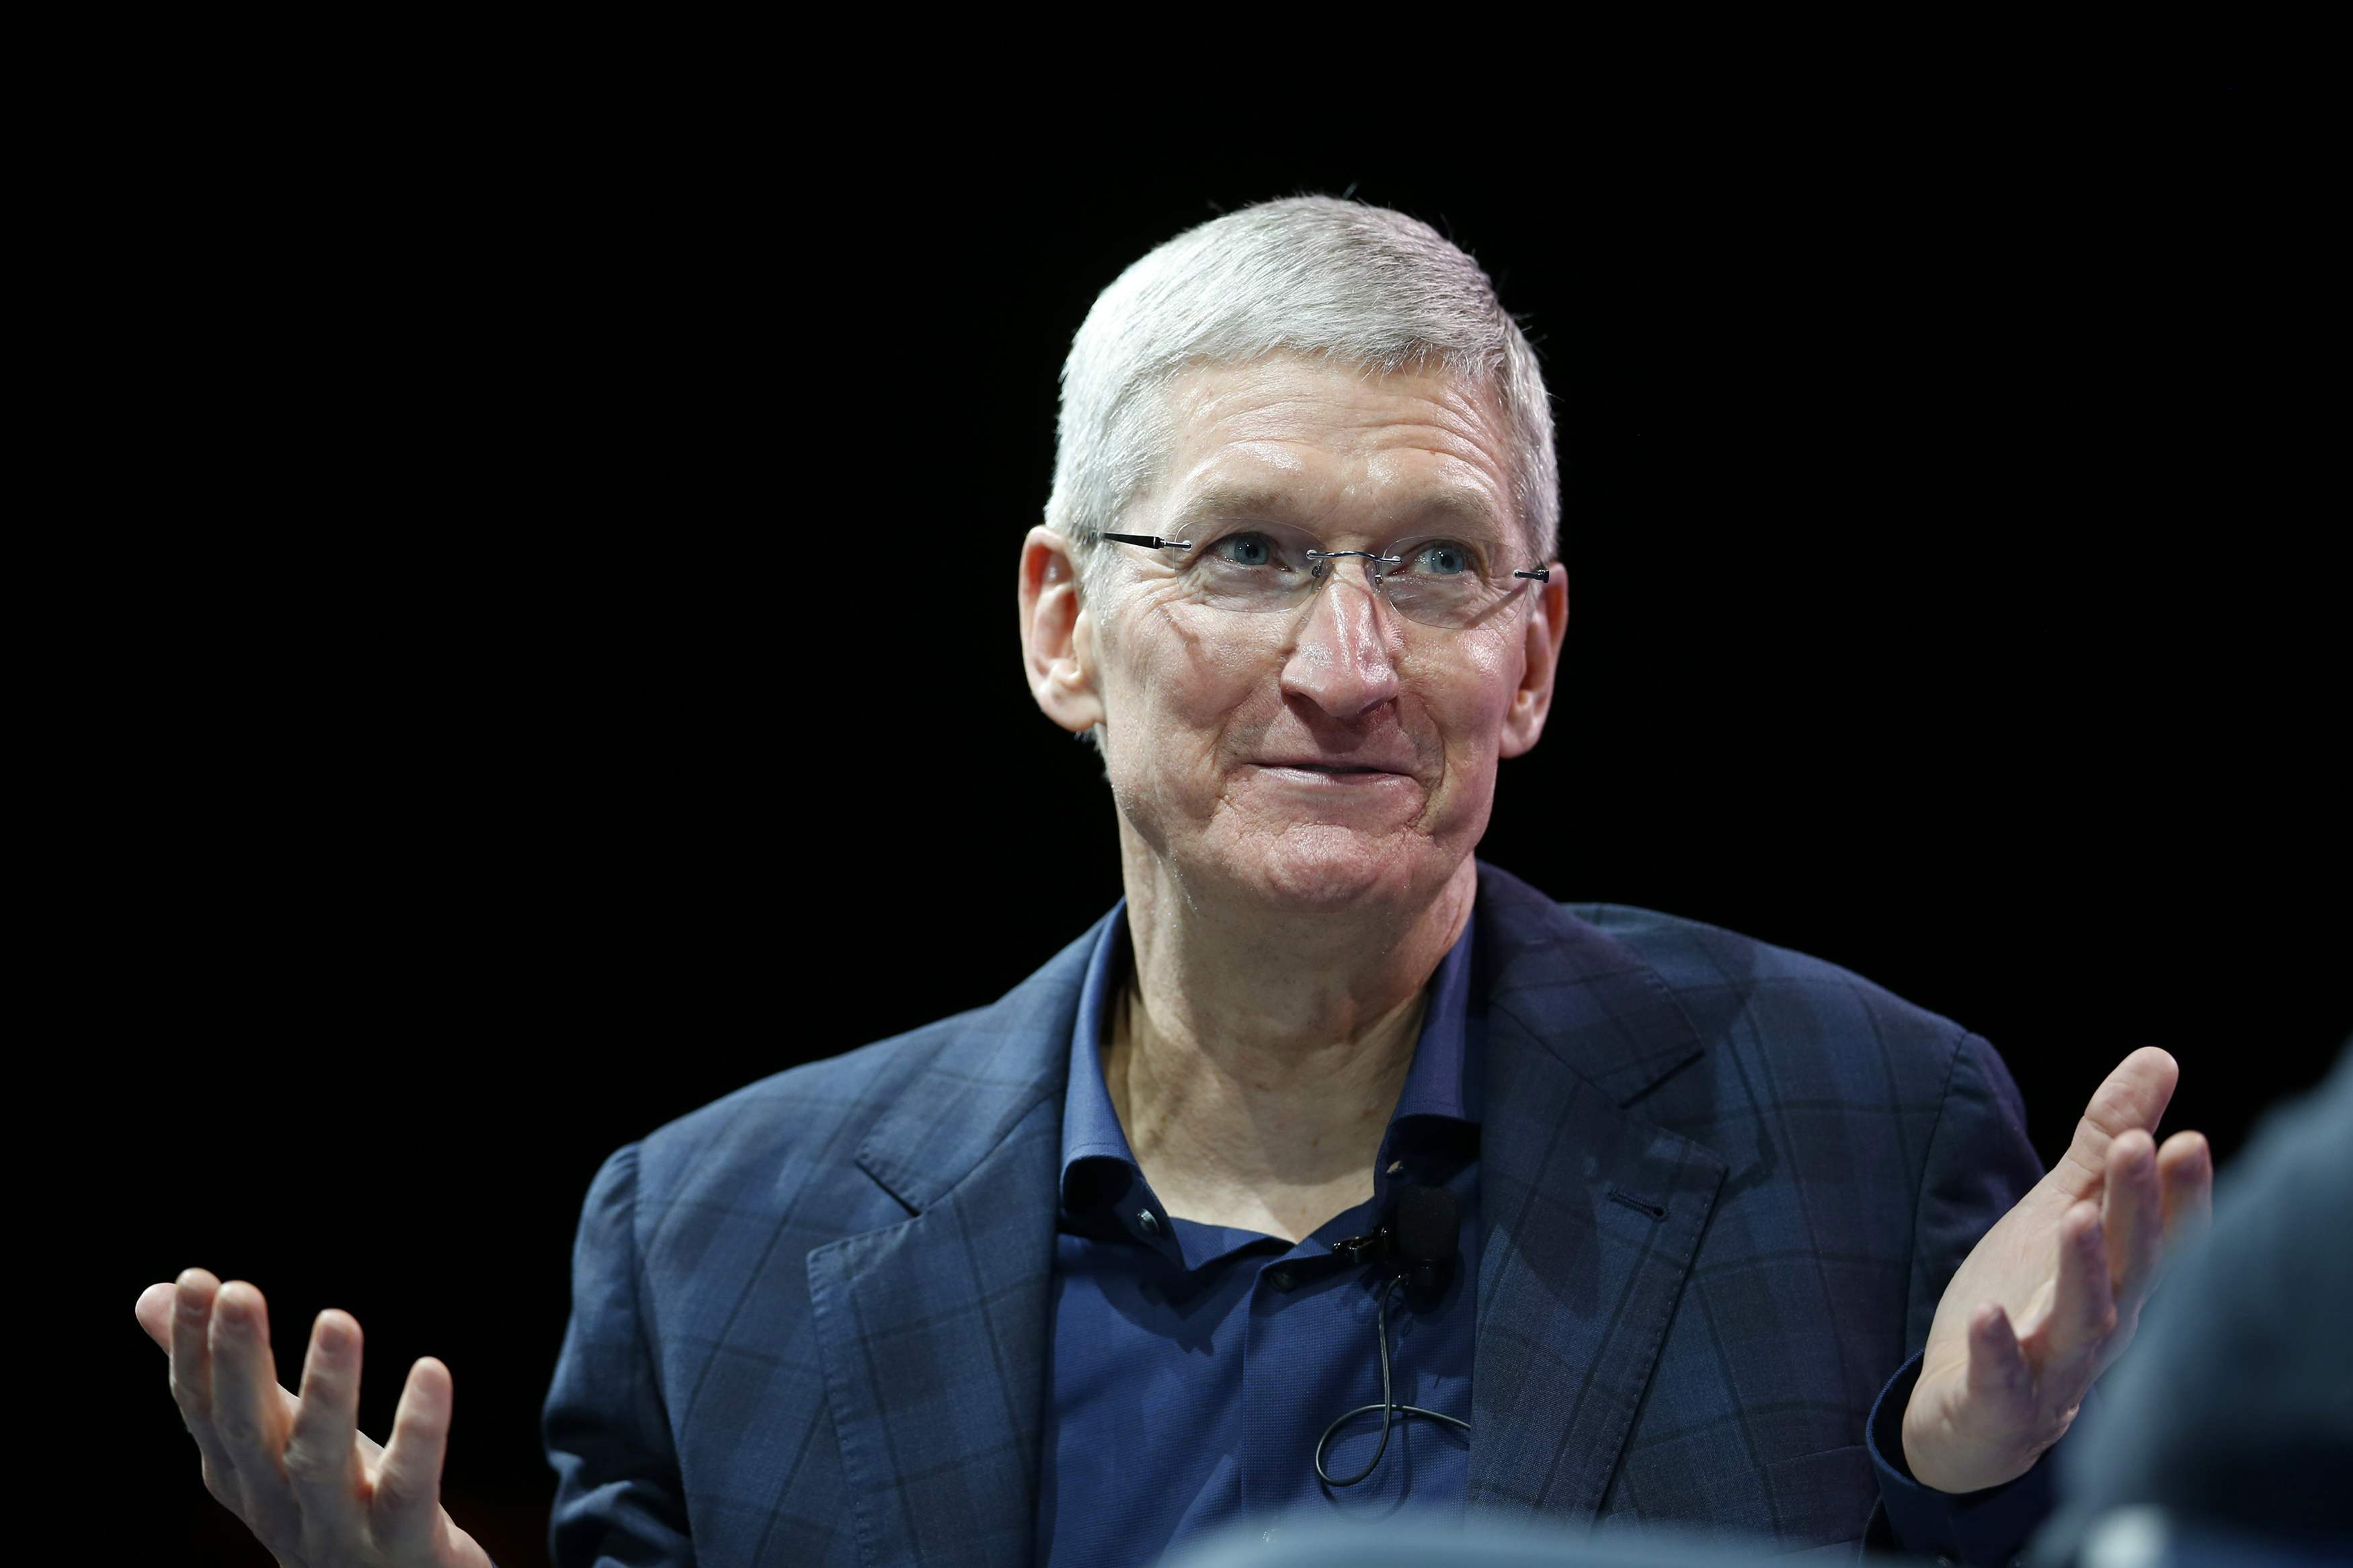 Apple's chief exec Tim Cook: 'I'm proud to be gay'